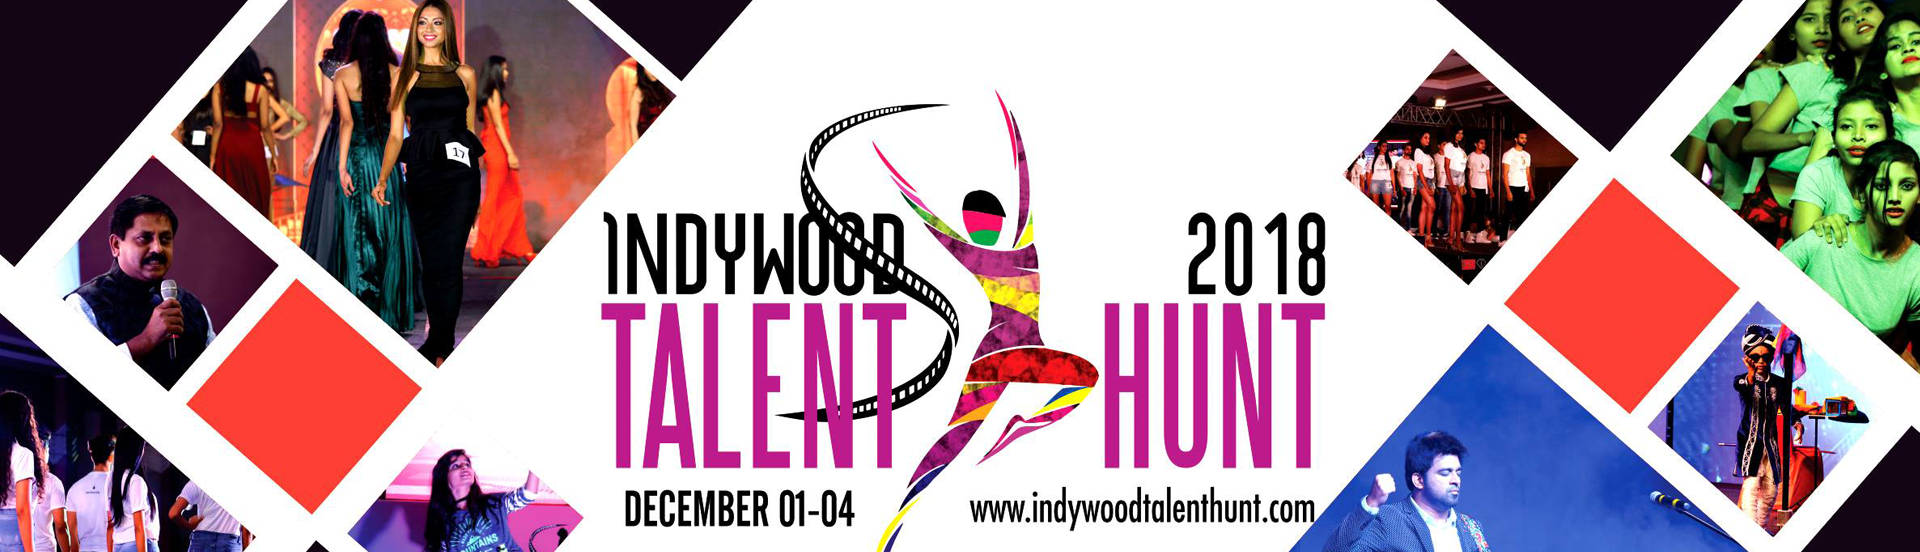 Talent Hunt India - Entertainment Events India - Live Contest India